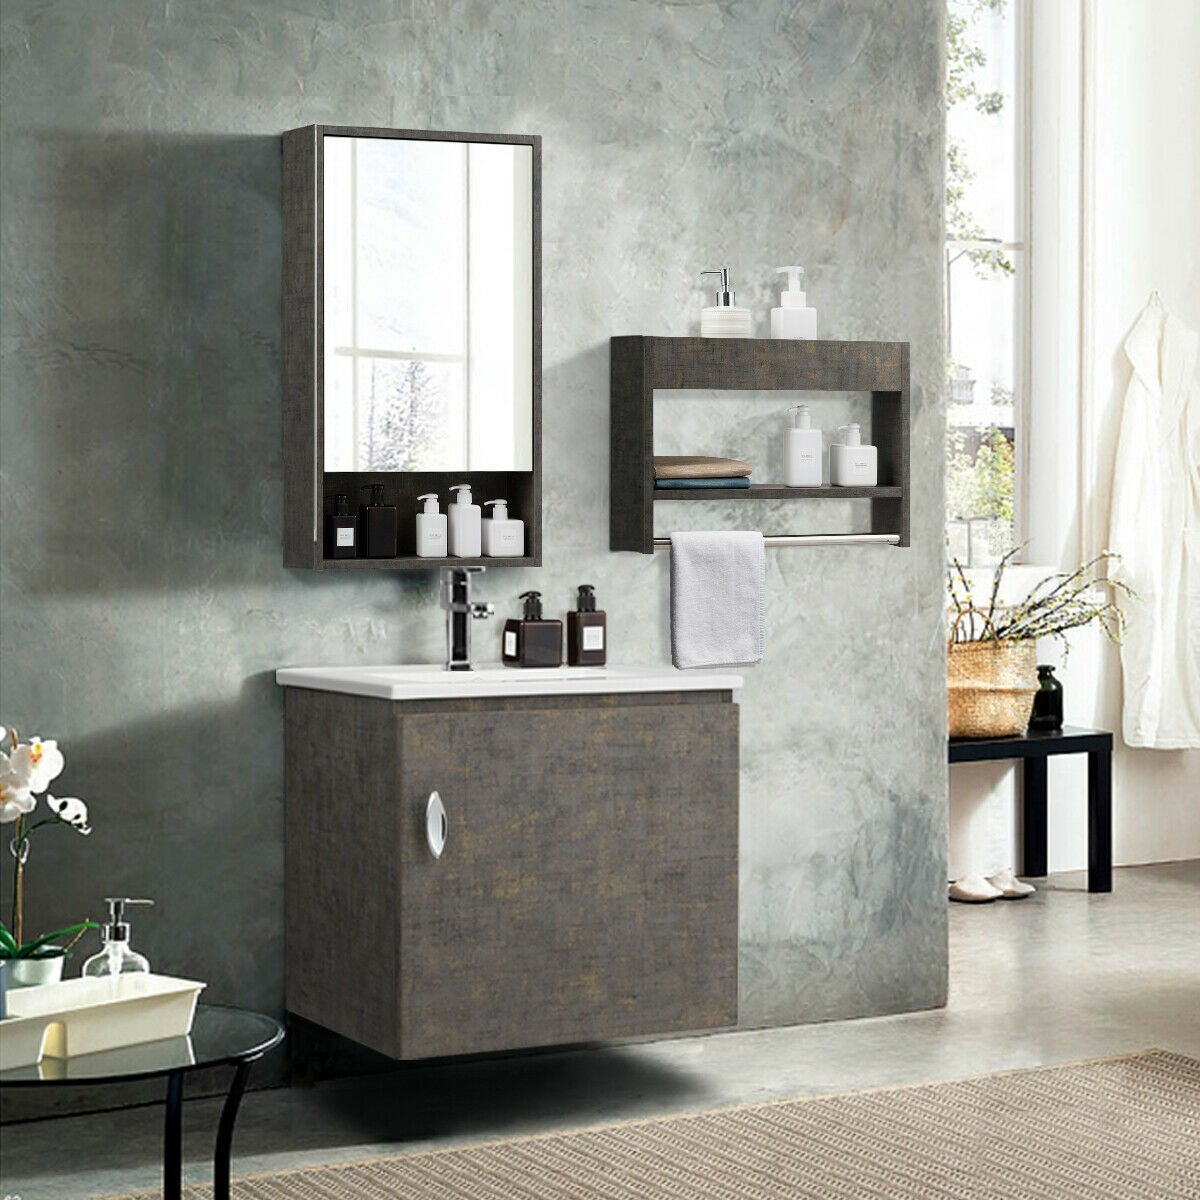 Wall Mounted Bathroom Vanity Sink